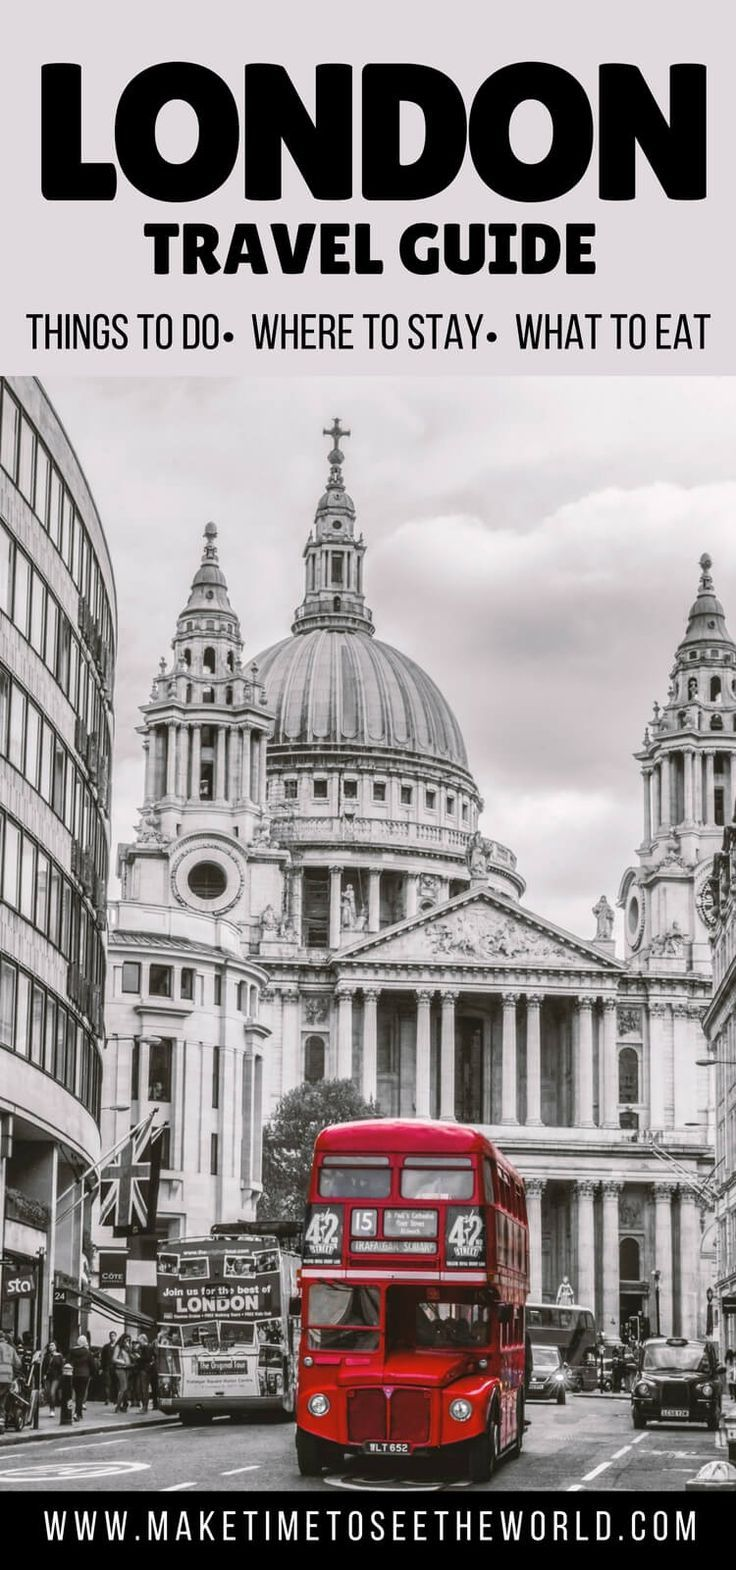 Wondering What to do in London on a weekend break? Read This! Our London Travel Guide has the Top Things to do in London + Where to Stay & What to Eat! ***************************************************************************** London | UK | London Thin